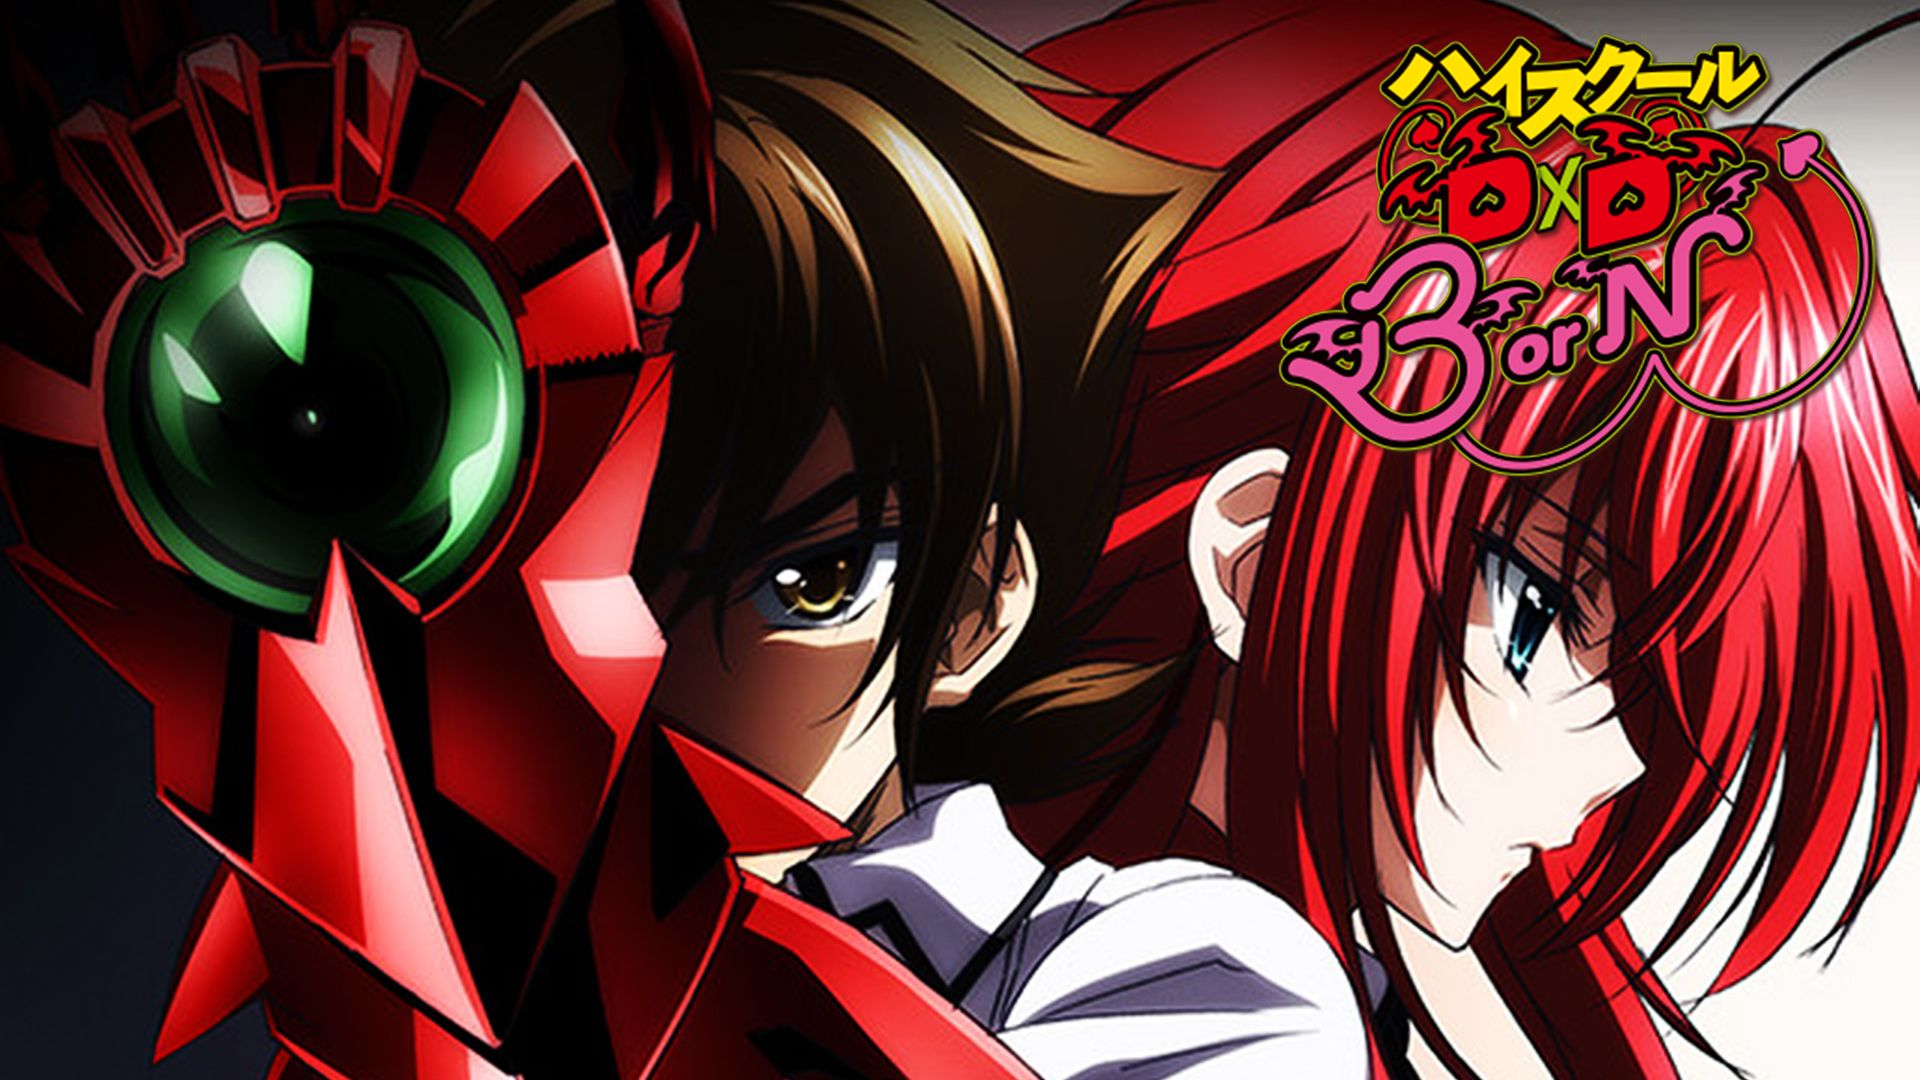 Poster A3 High School DxD Rias Gremory Rossweisse Ecchi Manga Anime Cartel 01